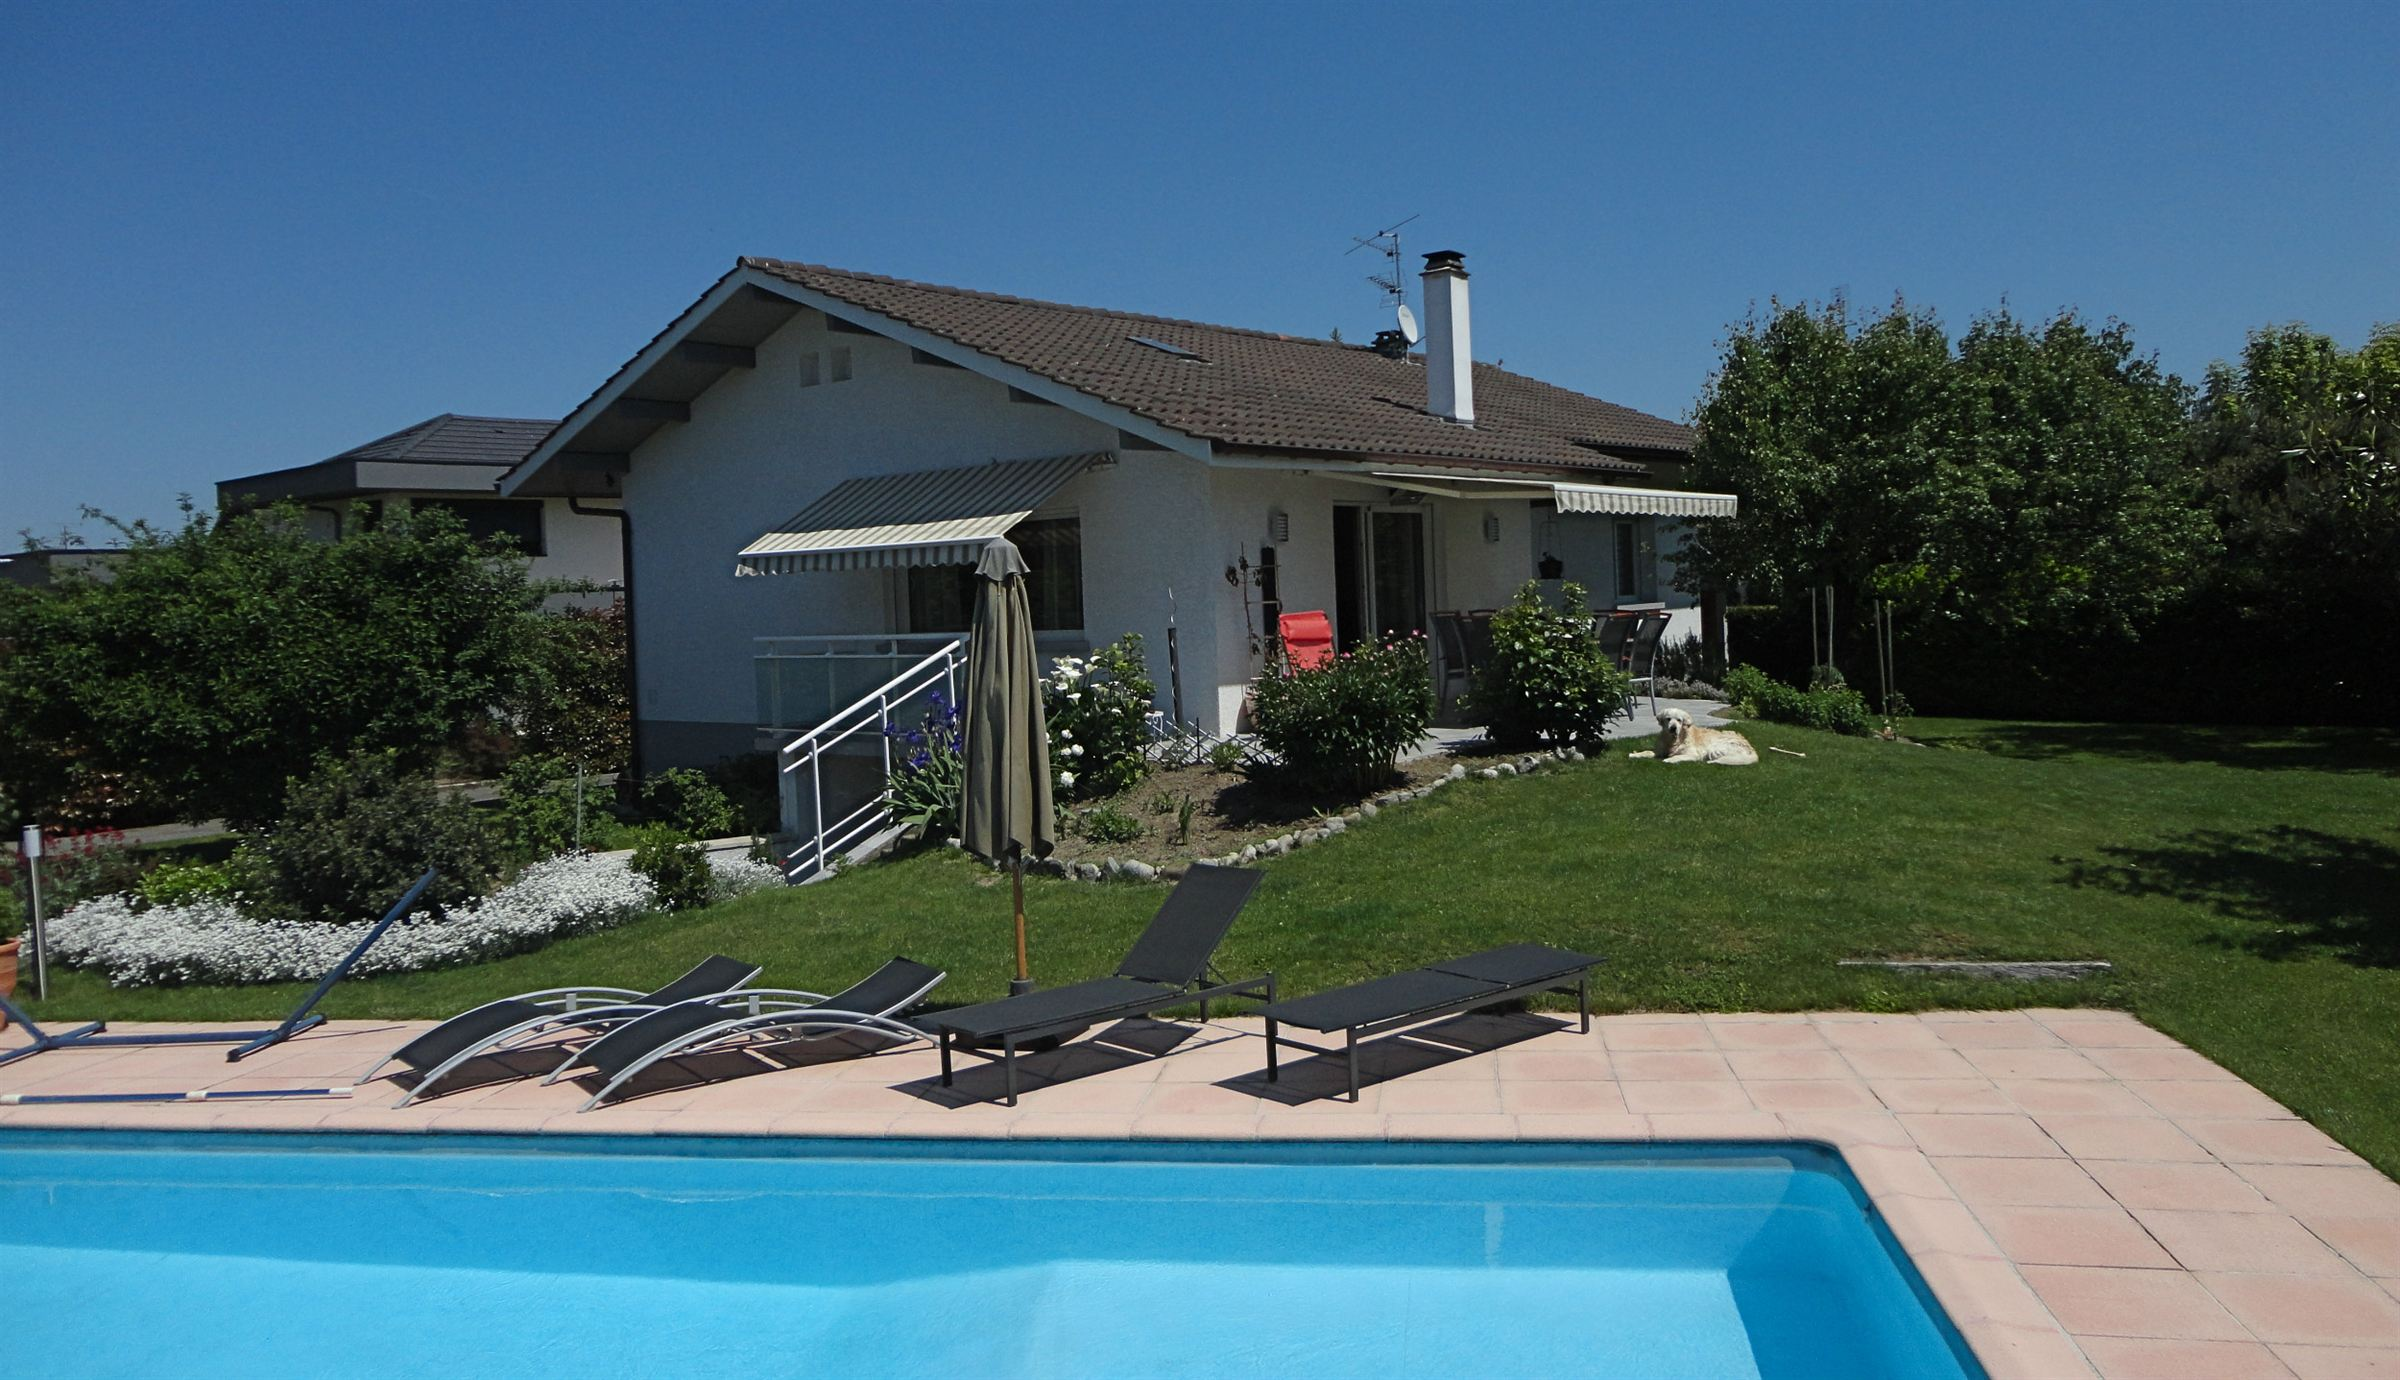 Single Family Home for Sale at Amphion les Bains, house with sauna and swimming pool. Publier, Rhone-Alpes 74500 France